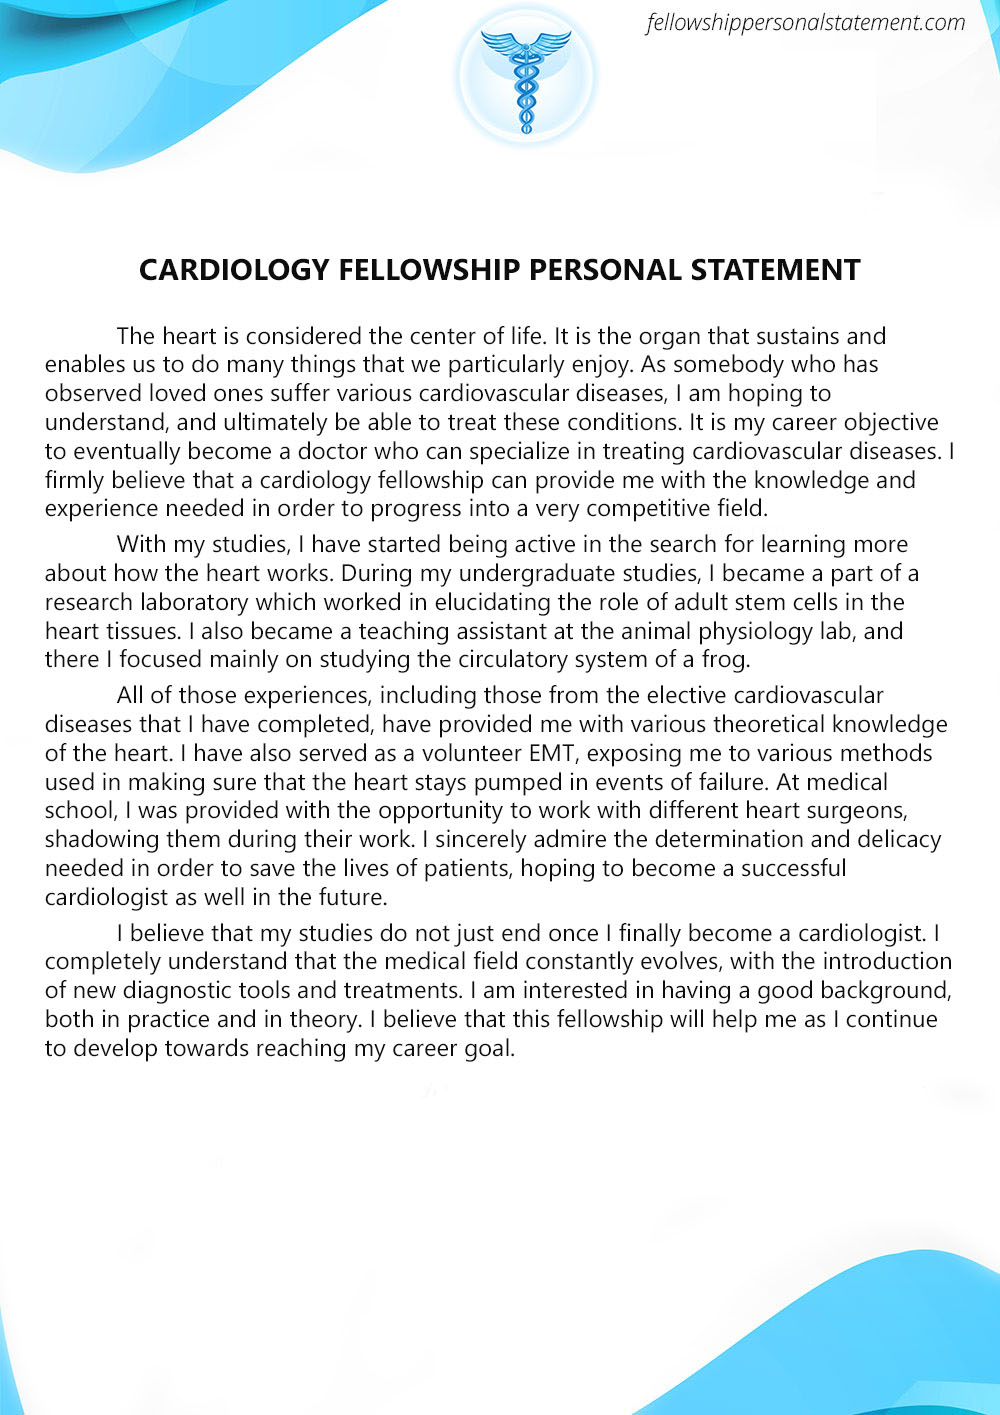 Writing an Interventional Cardiology Fellowship Personal Statement